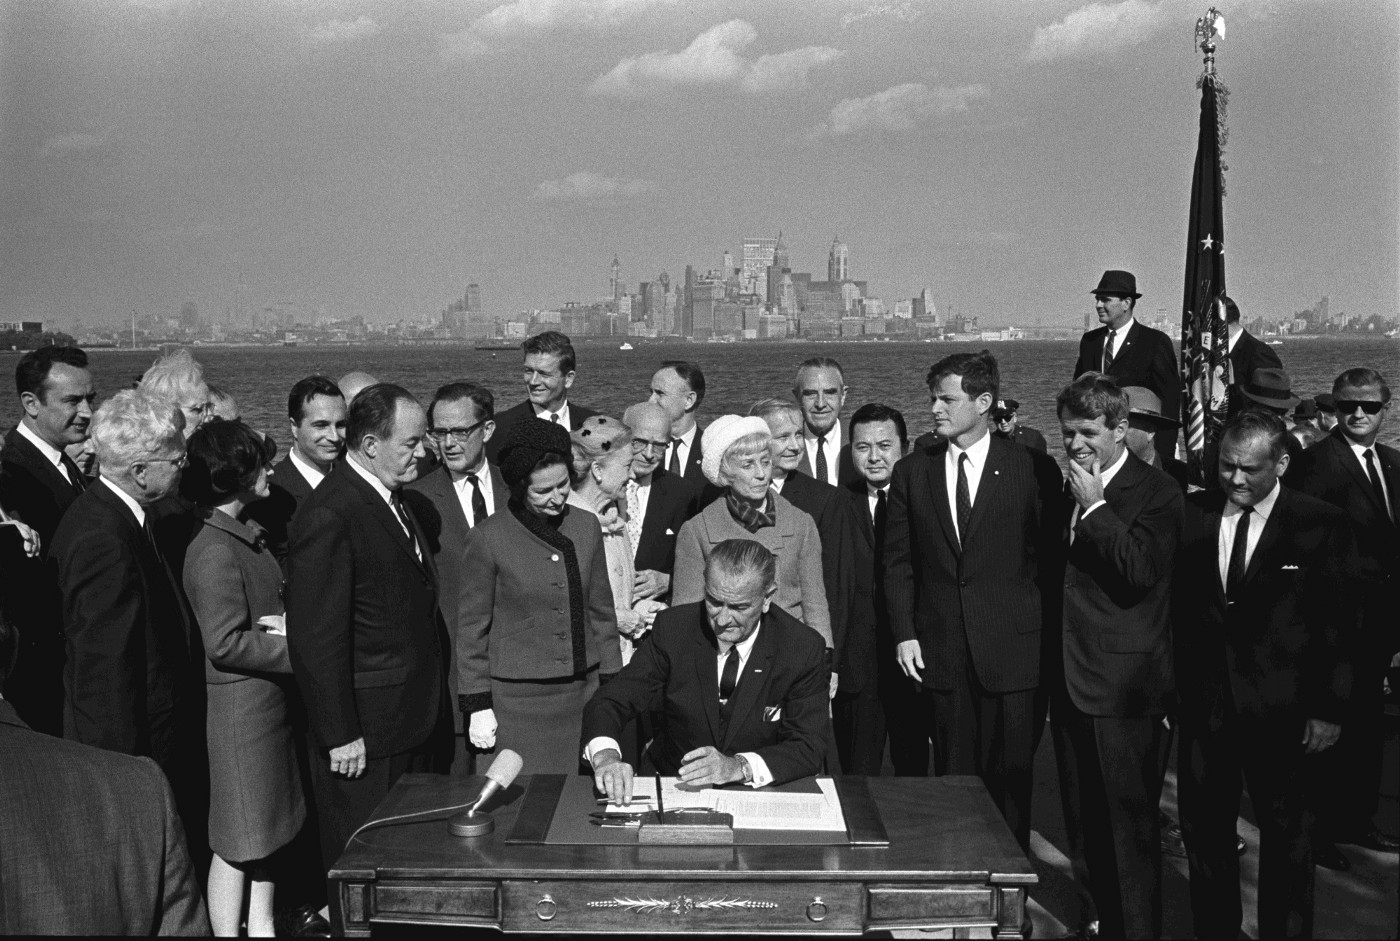 Lyndon B. Johnson signing the 1965 Hart-Celler Immigration Act. Credit: LBJ Library photo by Yoichi Okamoto